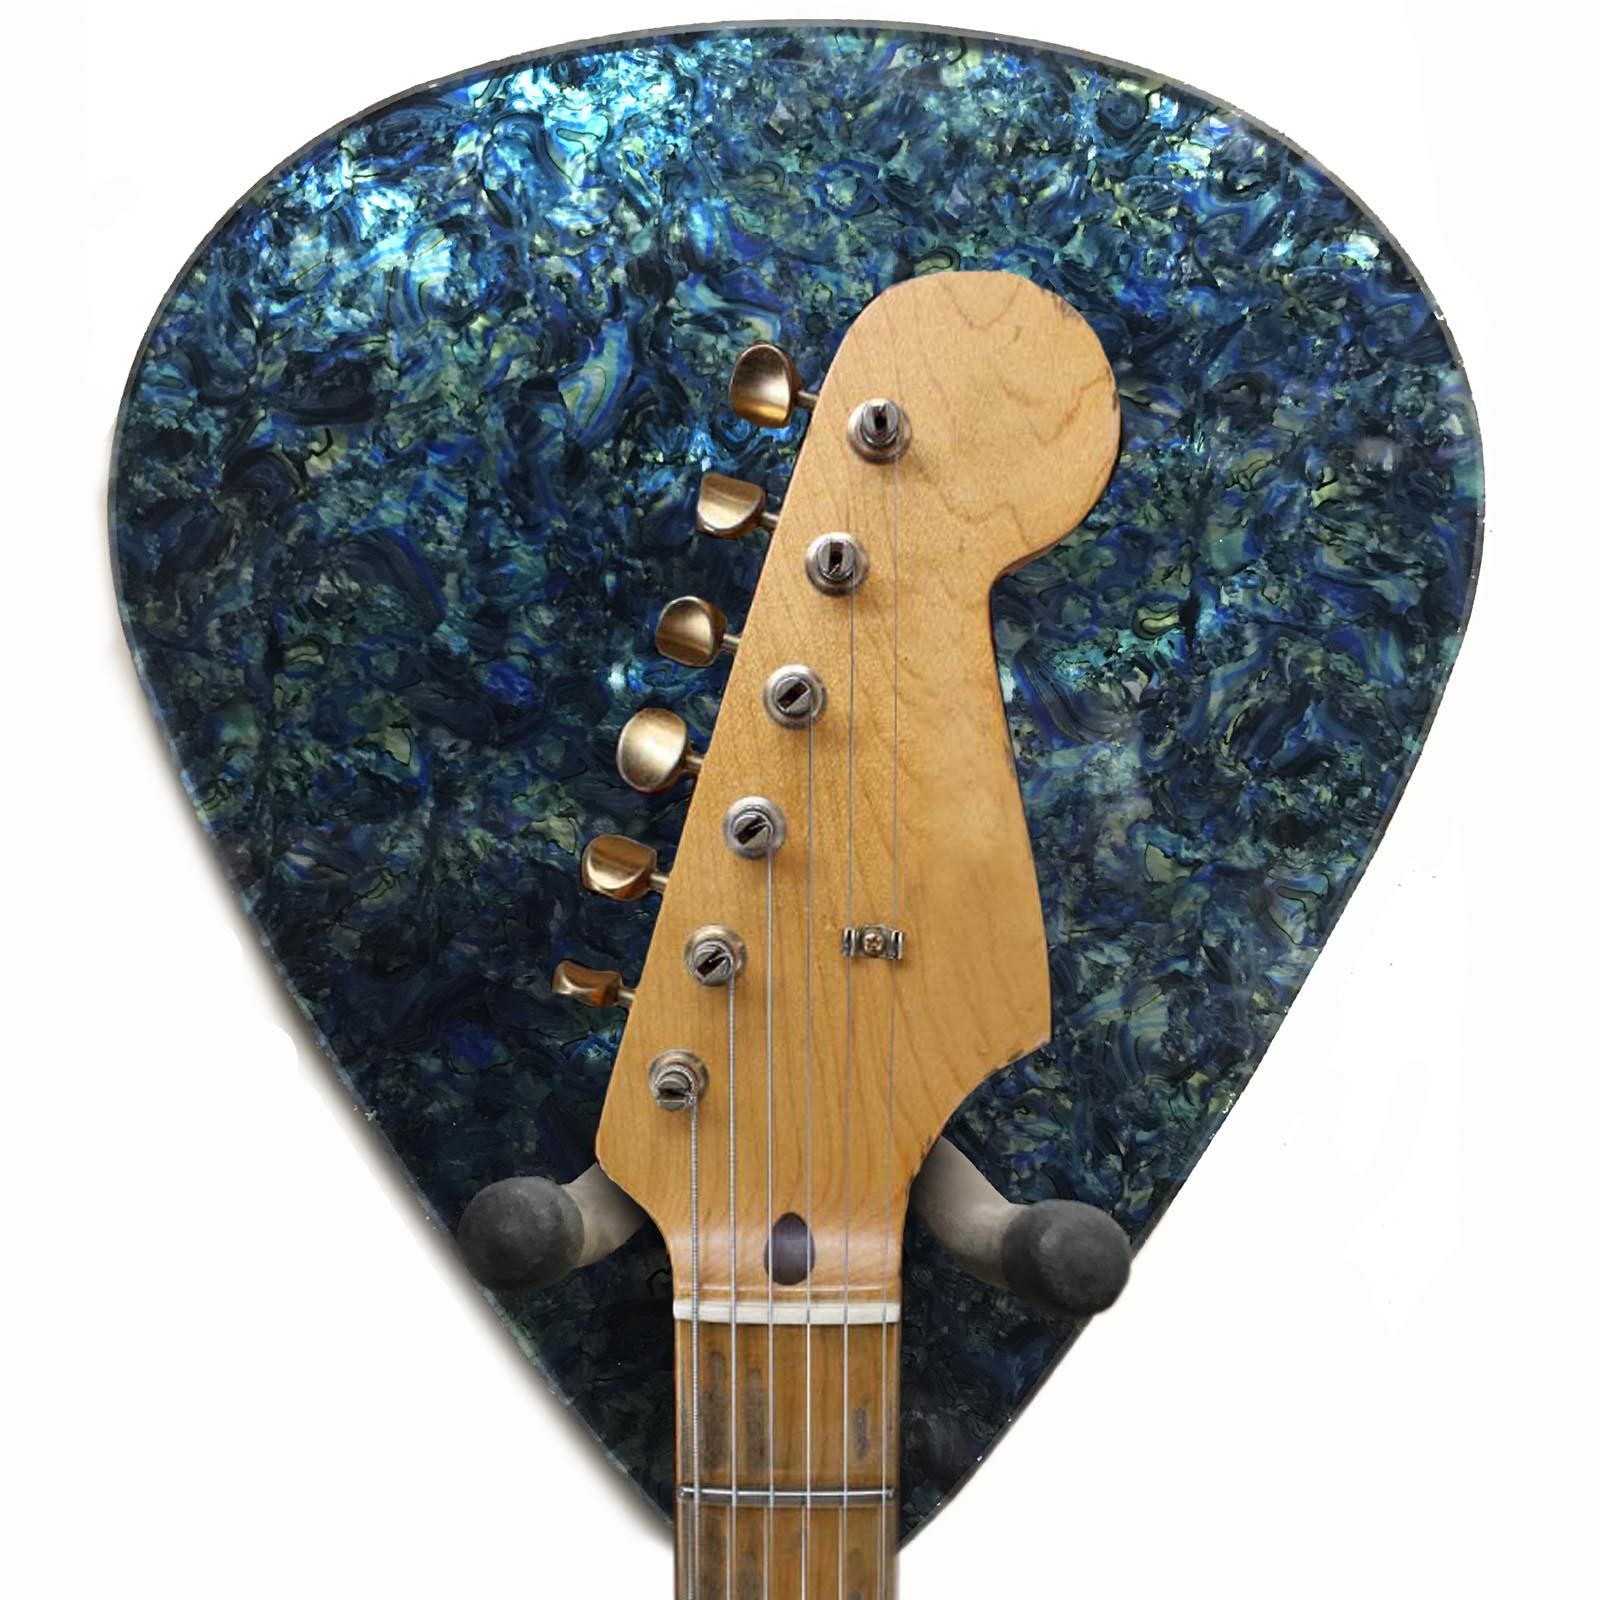 Axetreme Pick Guitar Wall Hanger™ - Includes String Swing Hanger - Faux Blue/Green Abalone